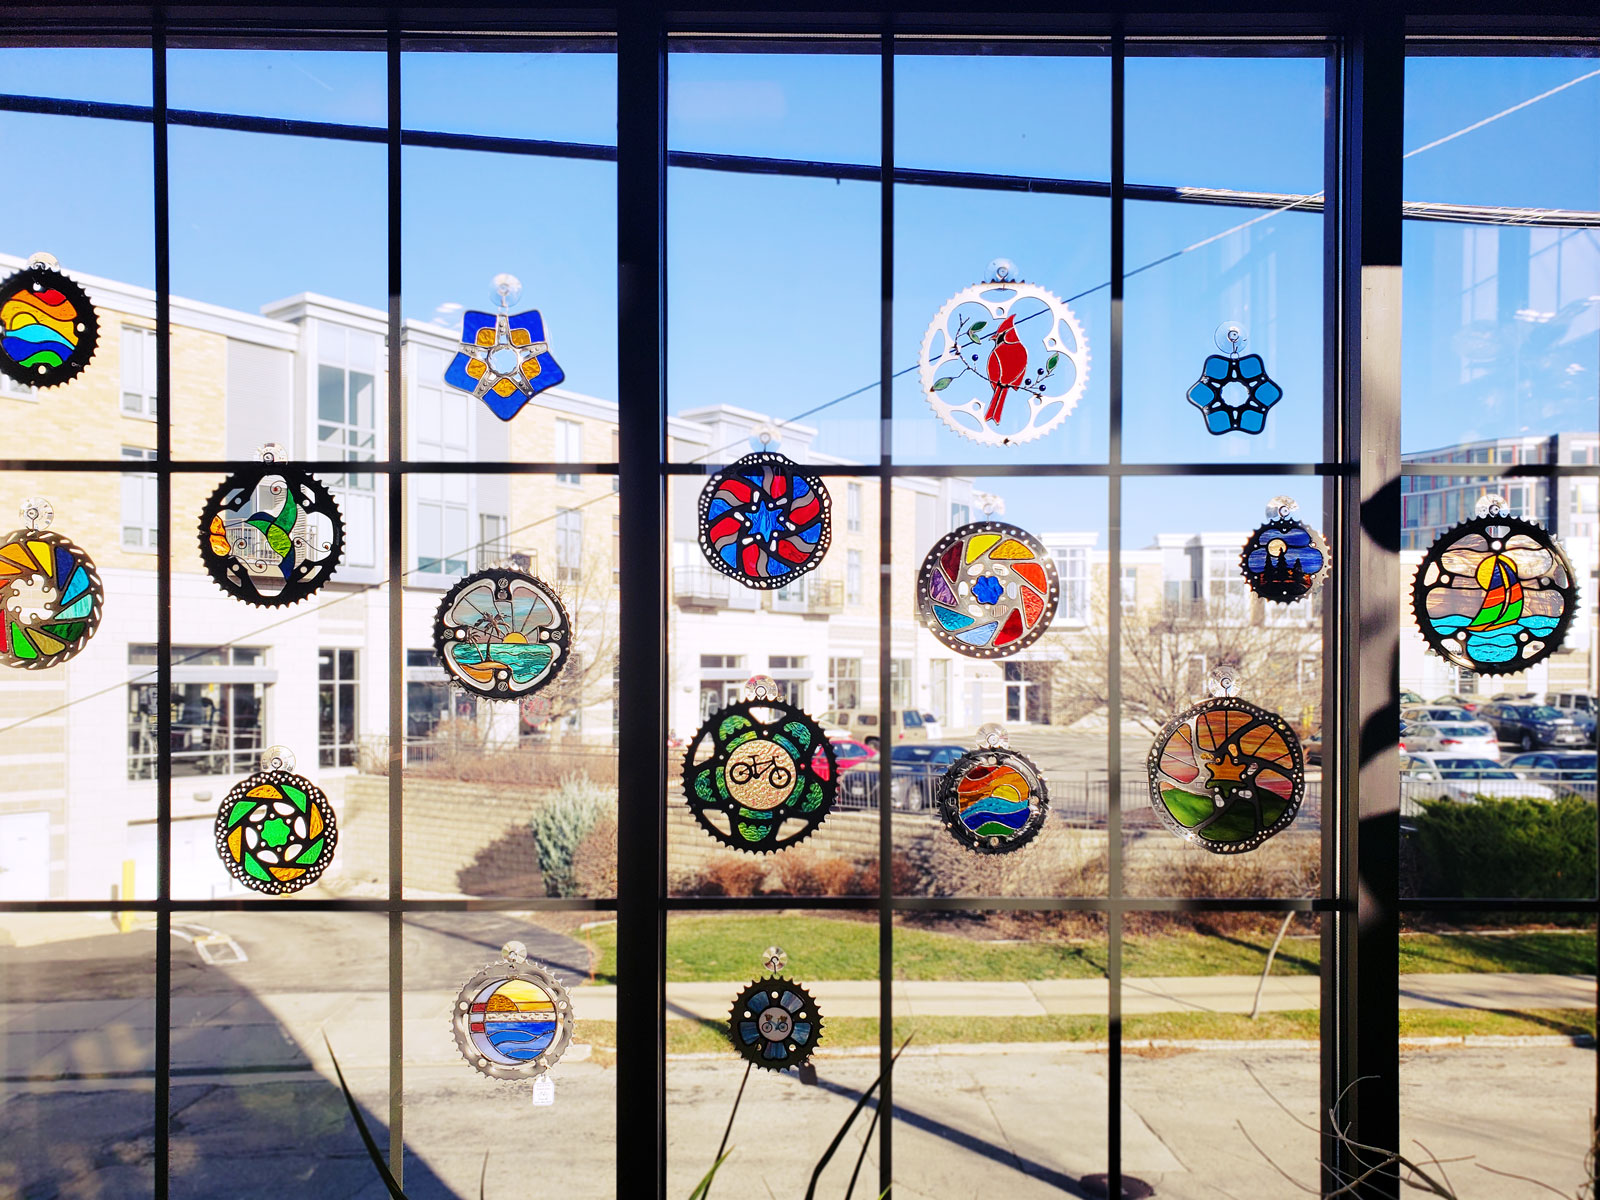 These stained glass window decorations were made from recycled bike parts and will be for sale in the gift shop.